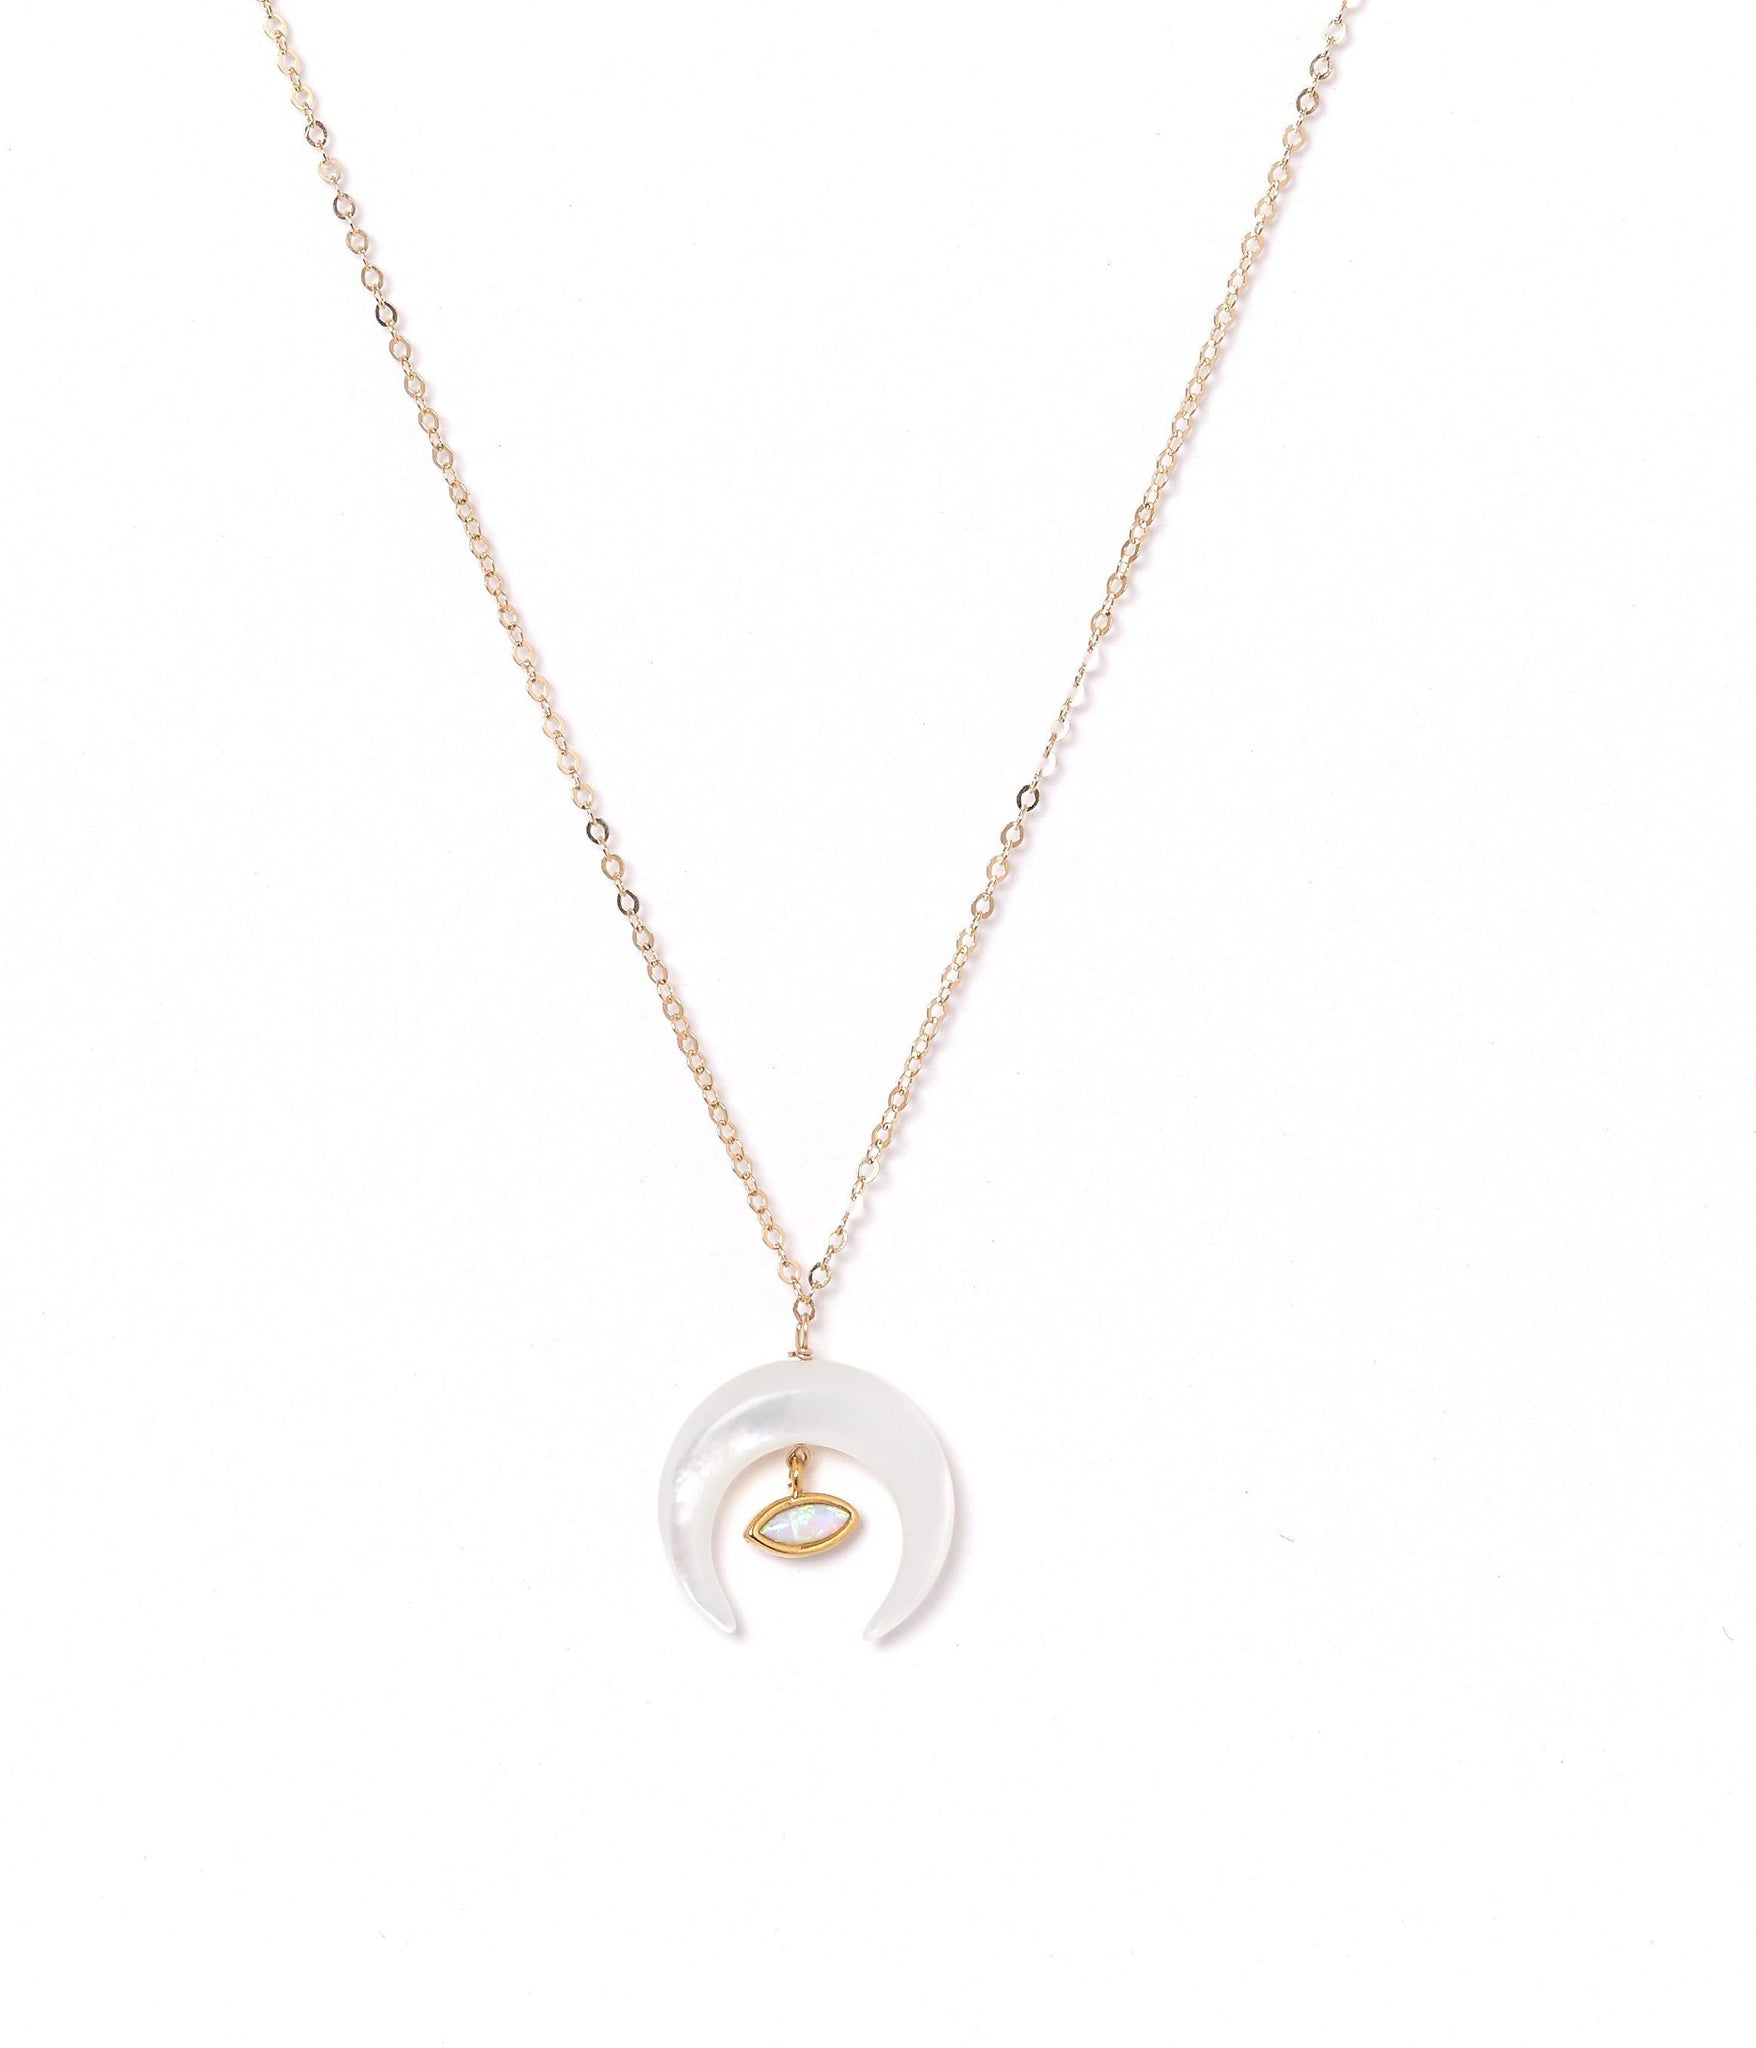 Gold-Filled Brillar Pendant Necklace